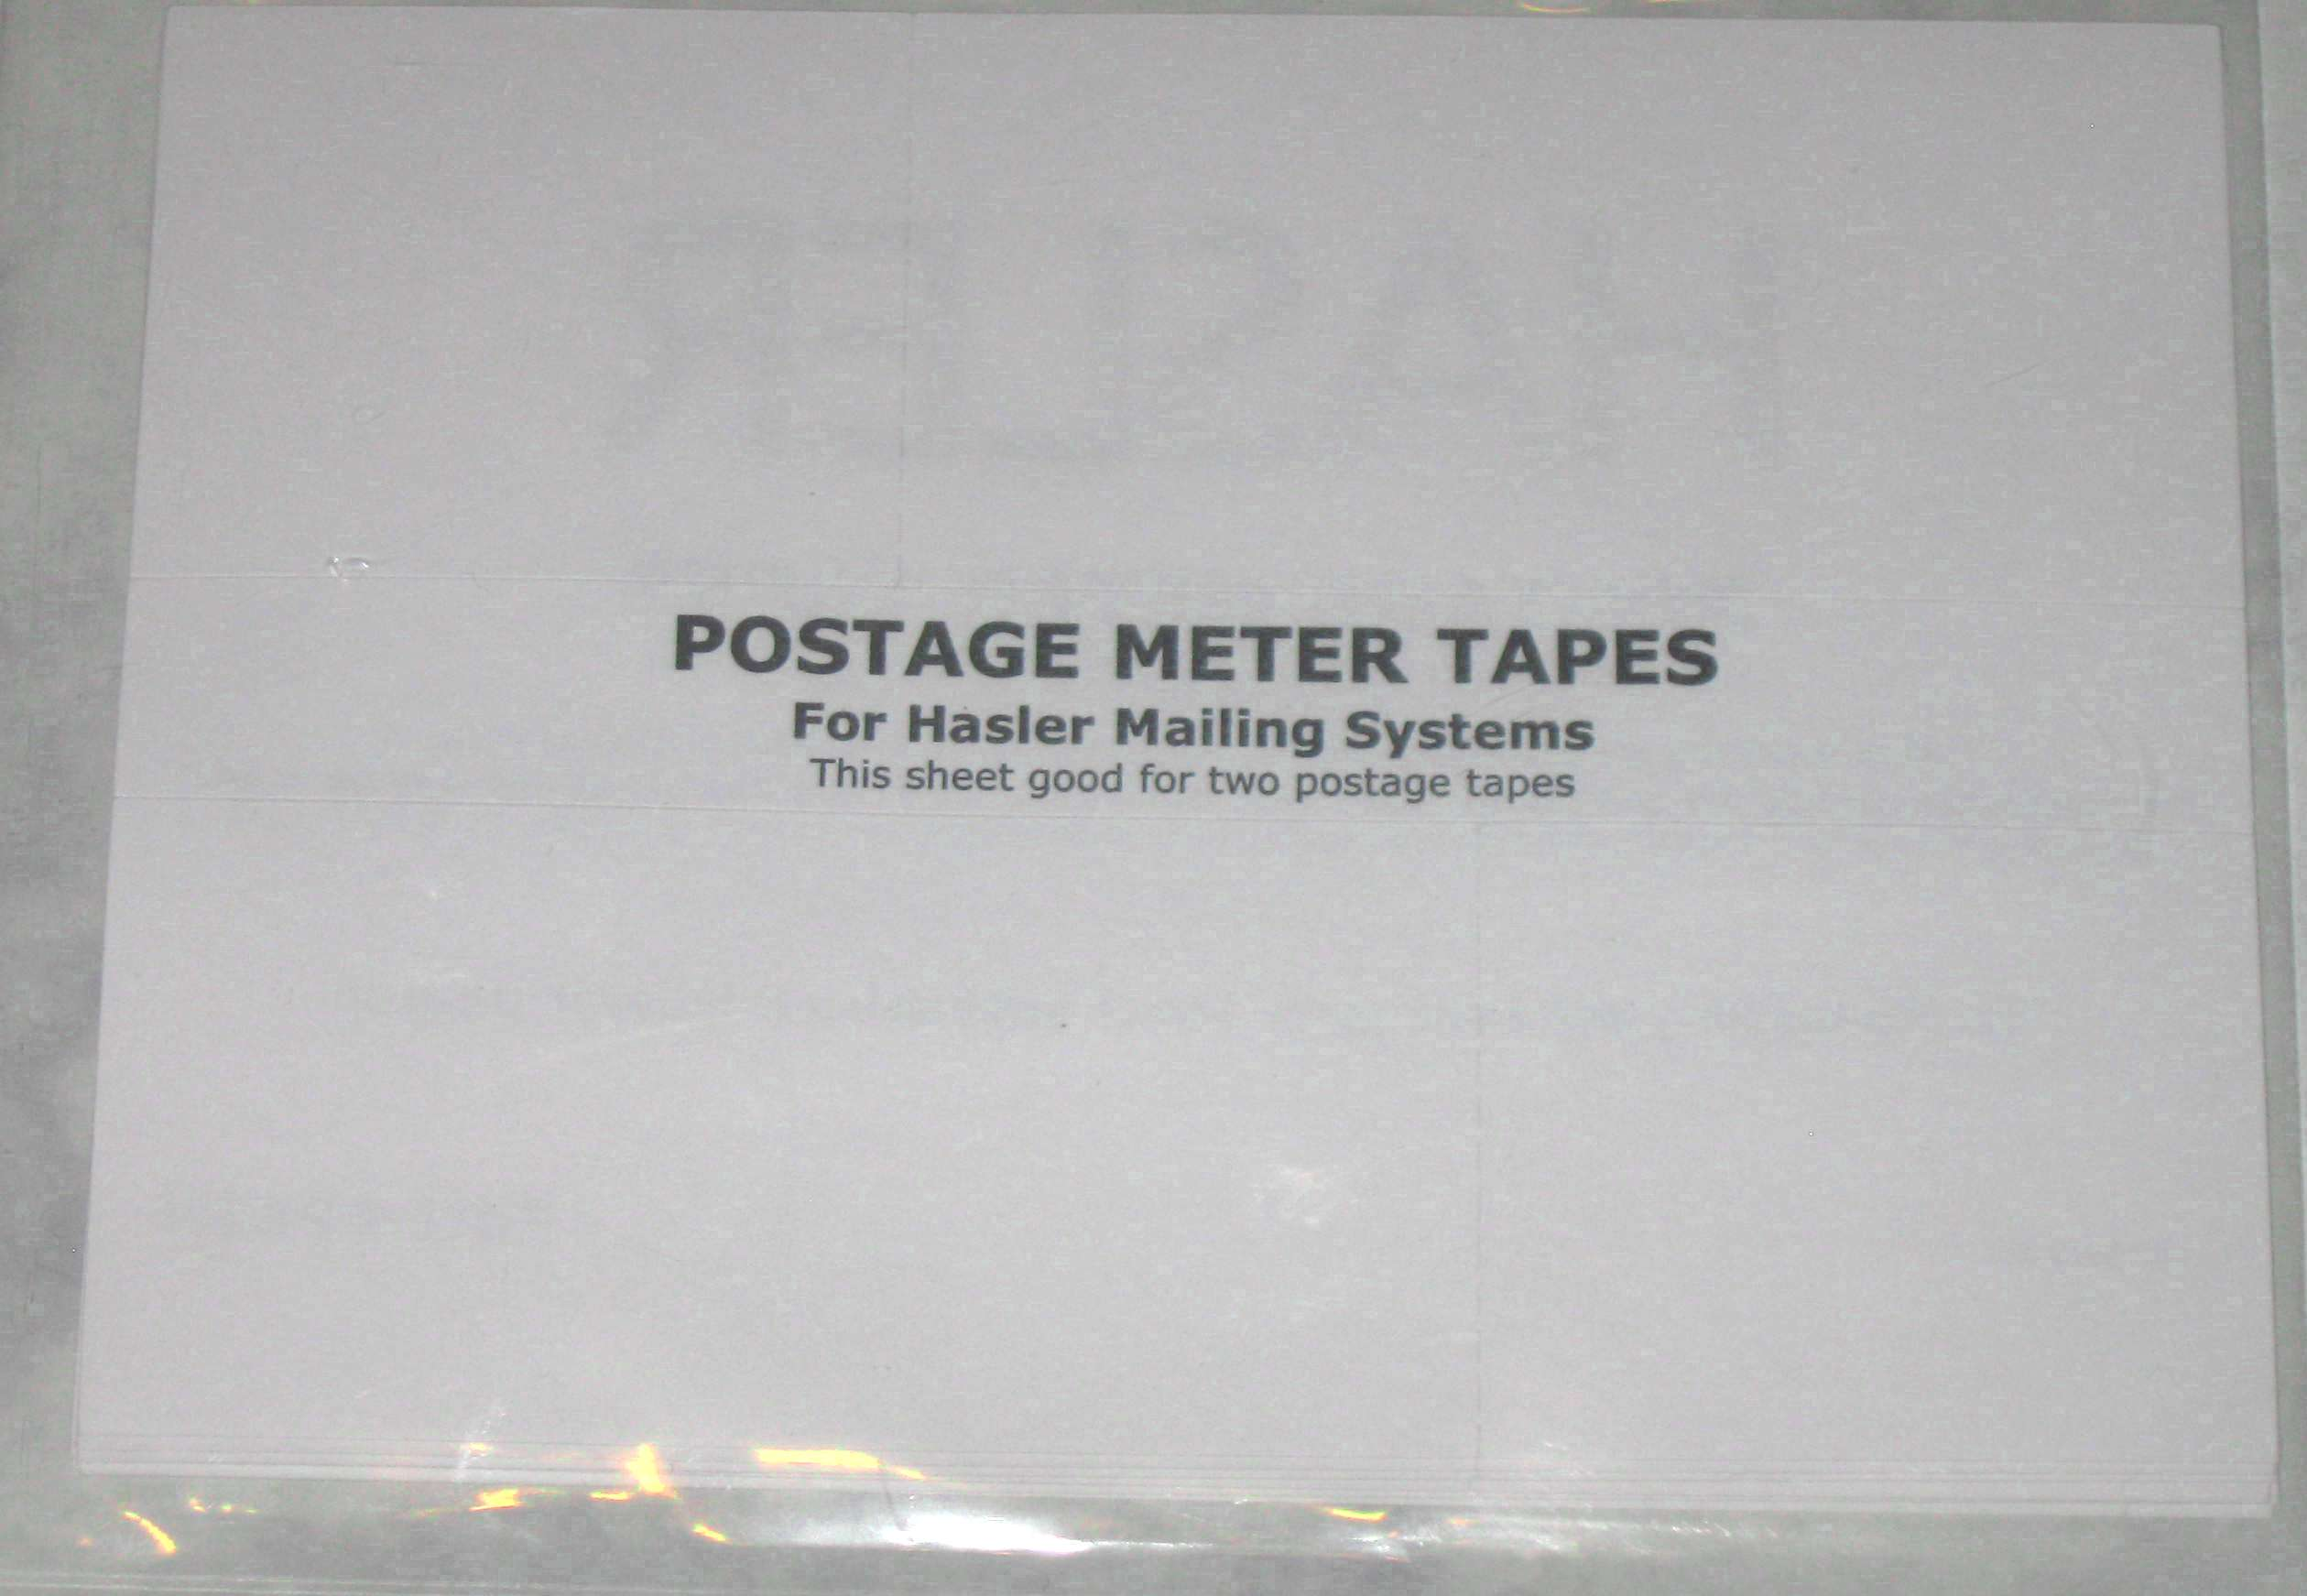 Postage Meter Tapes $17.00 for 150 labels